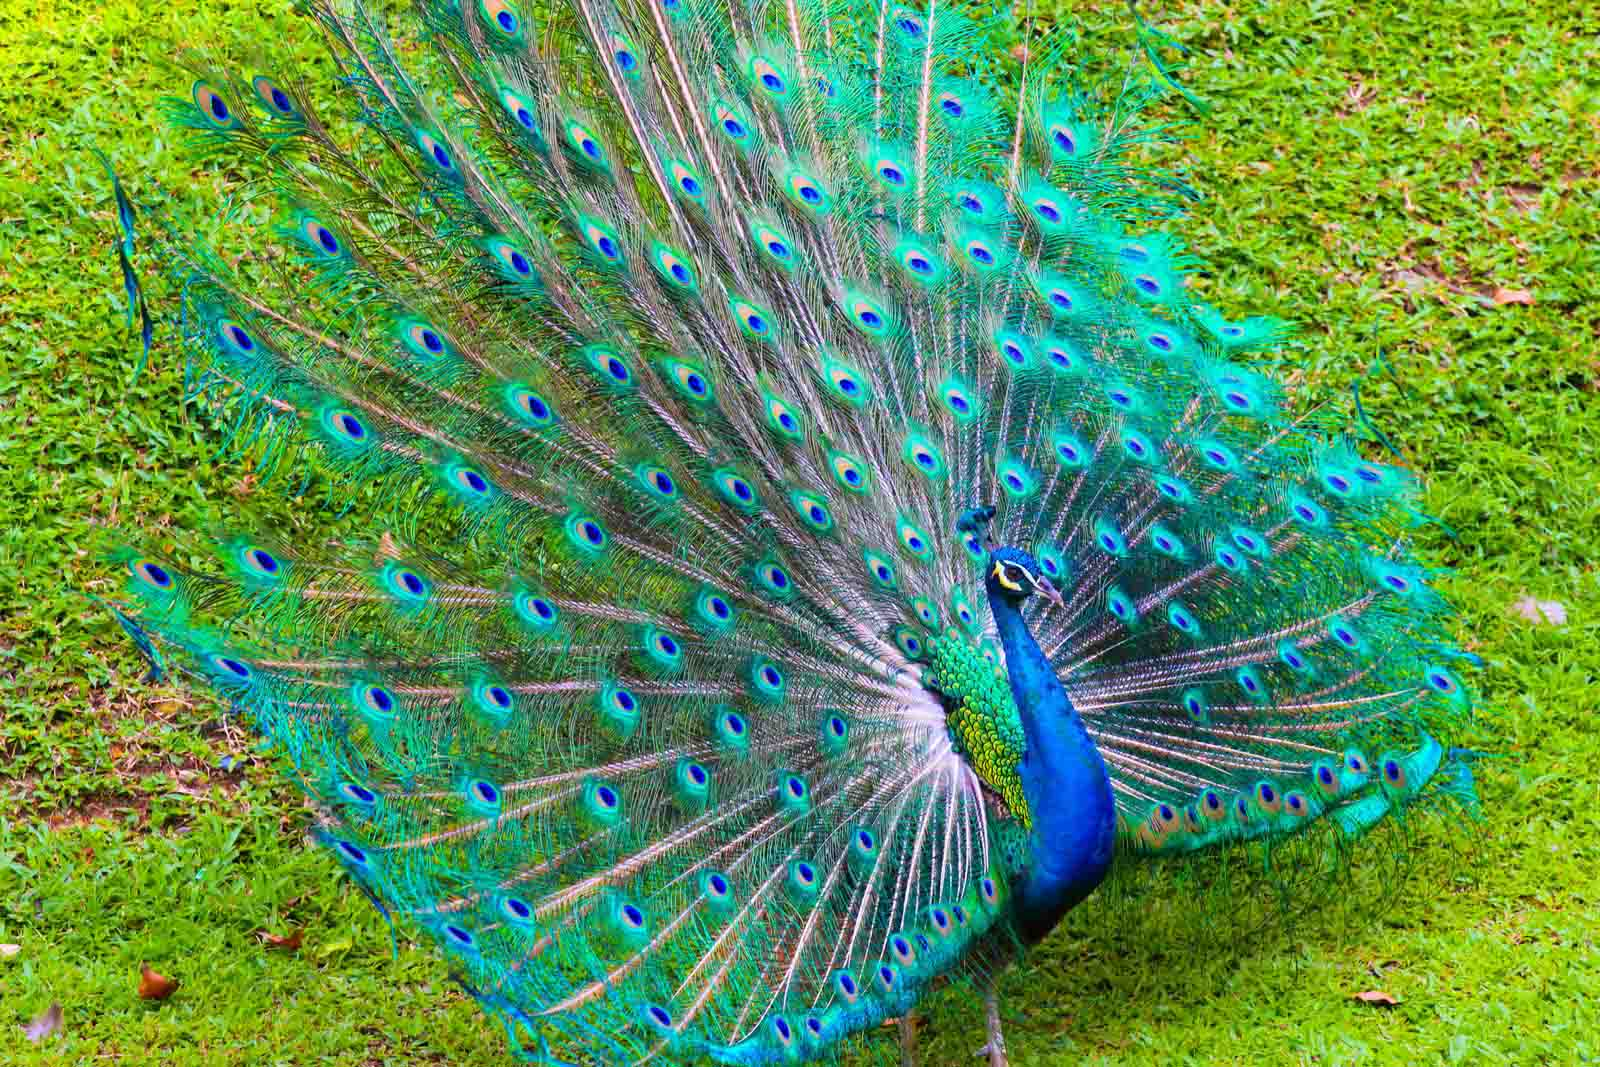 Peacock HD Wallpaper Download